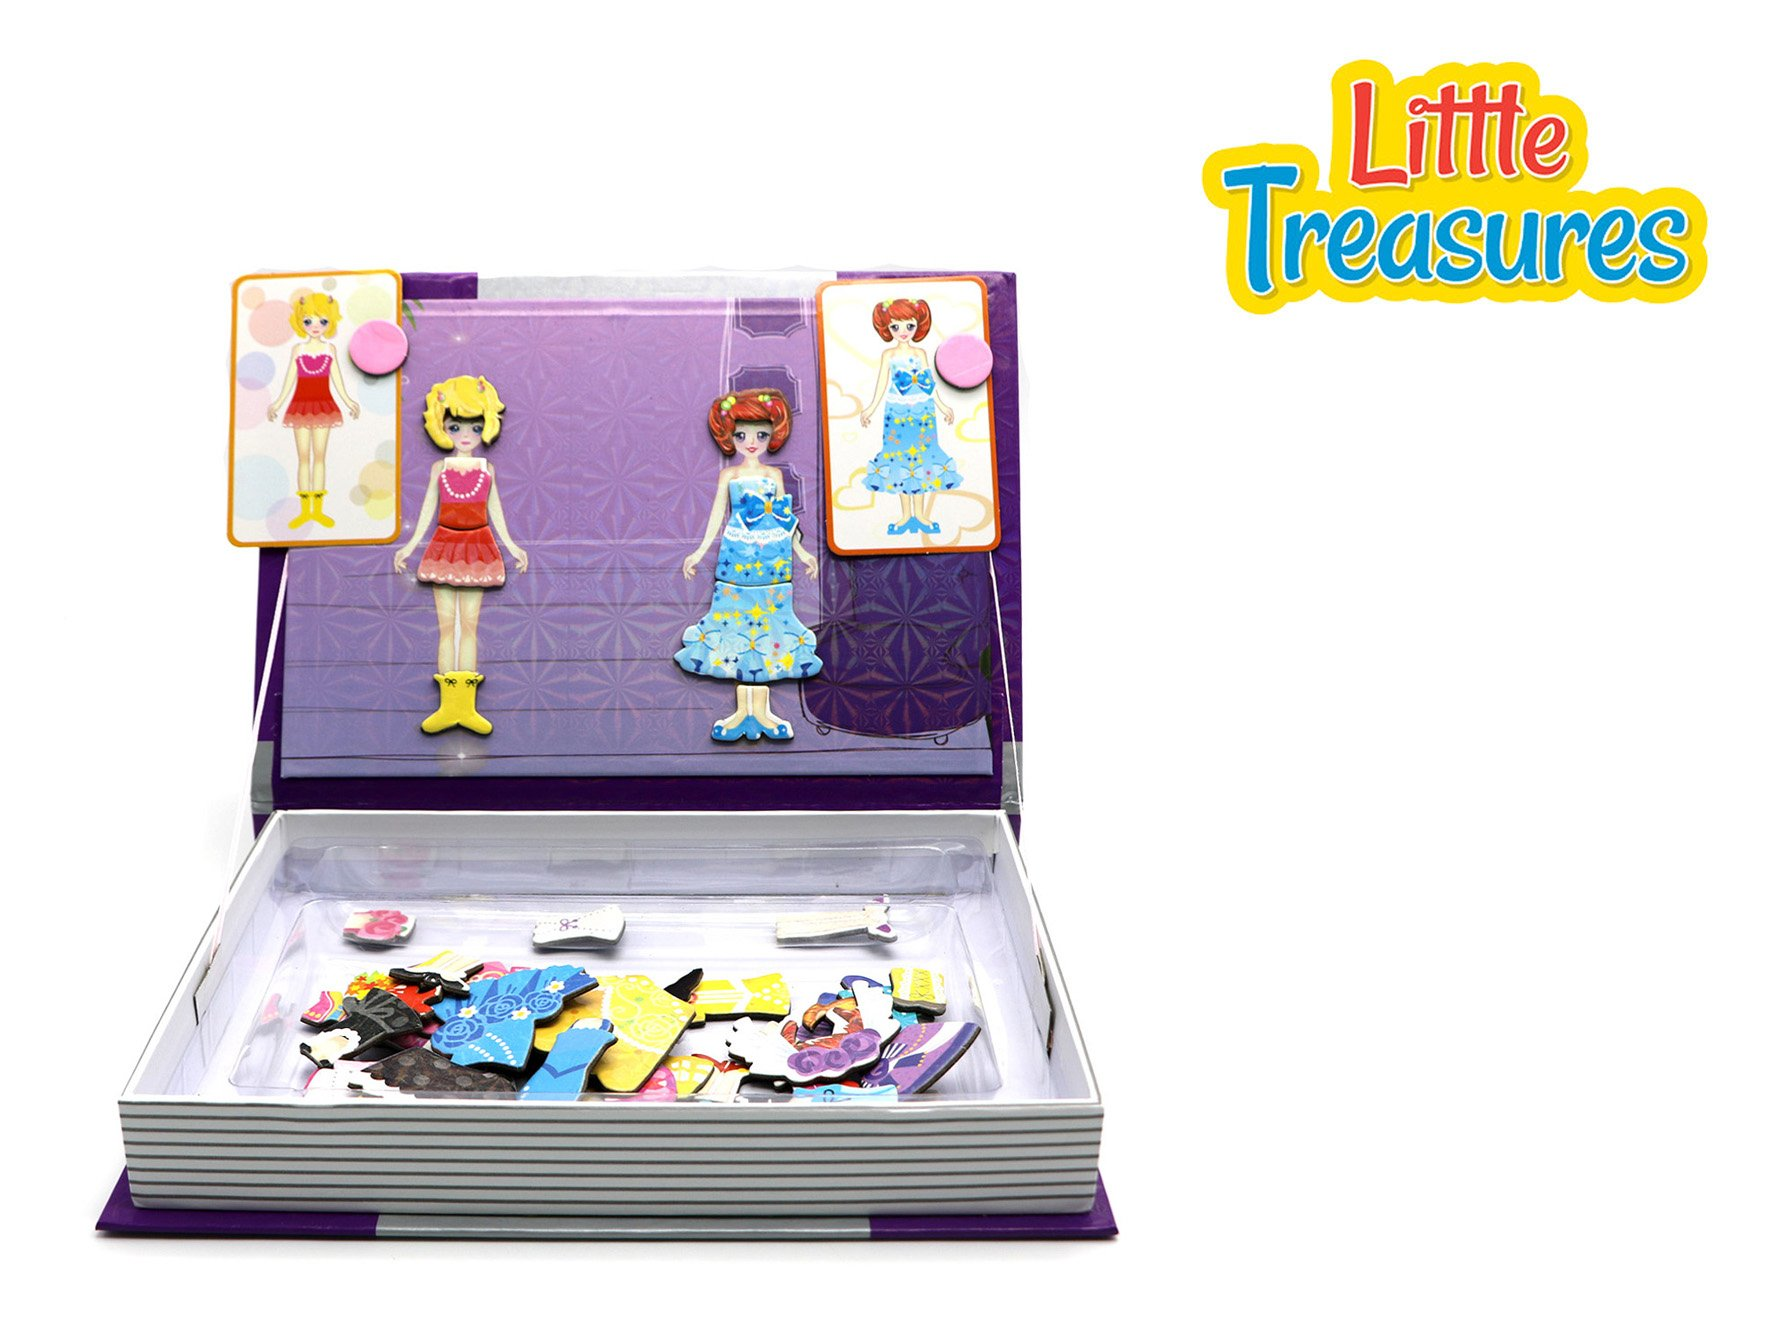 Little Treasures 66-Pcs Magnetic Dress-Up Set - Gorgeous Princess Dressup Girl Toy Book for Kids Ages 3 Plus by Little Treasures